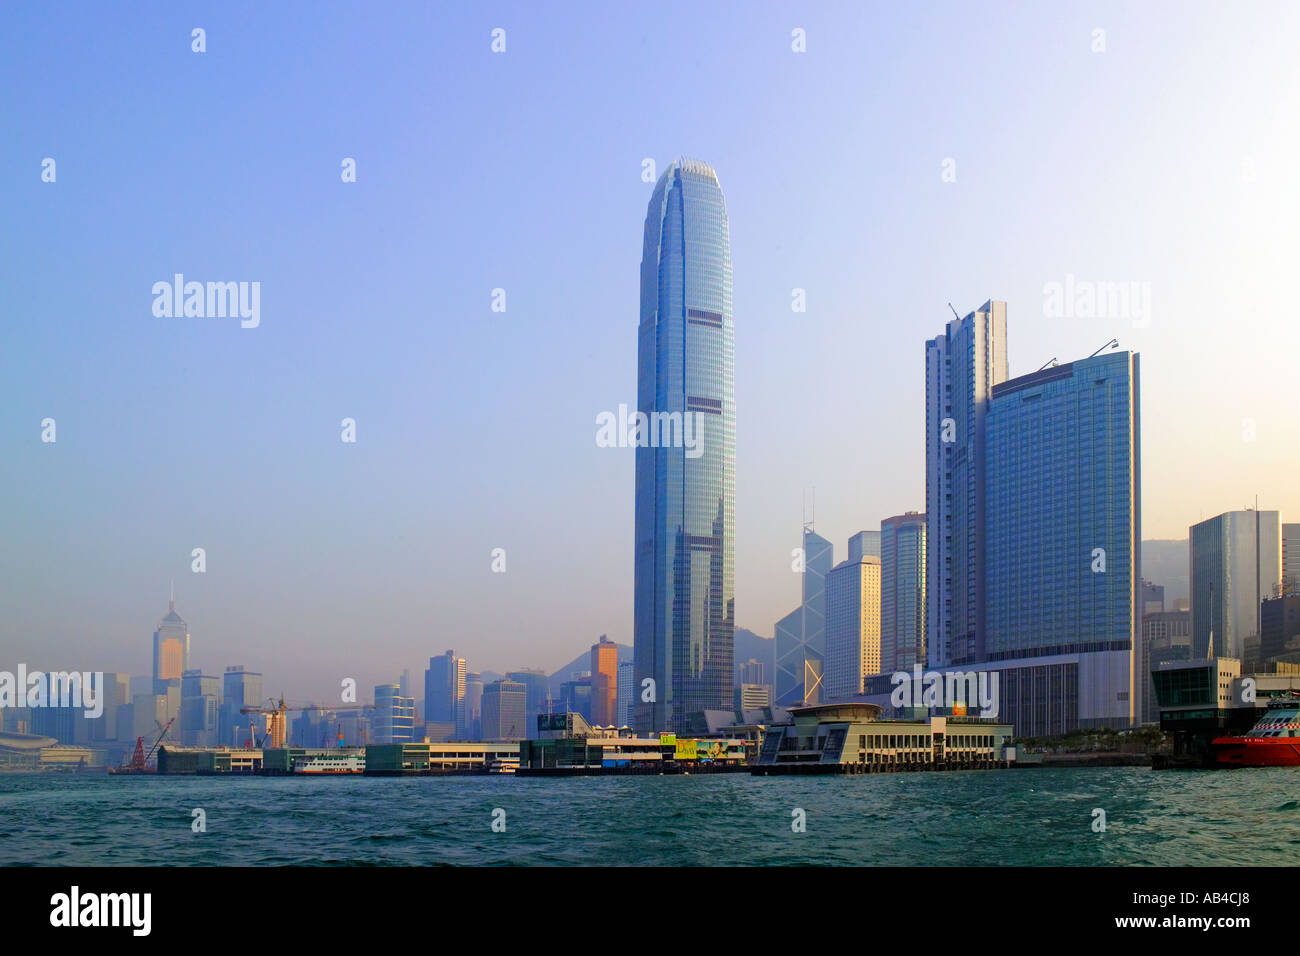 A view of skyscrapers on Hong Kong Island over Victoria Harbour with the IFC building (tallest in Hong Kong) prominent. - Stock Image